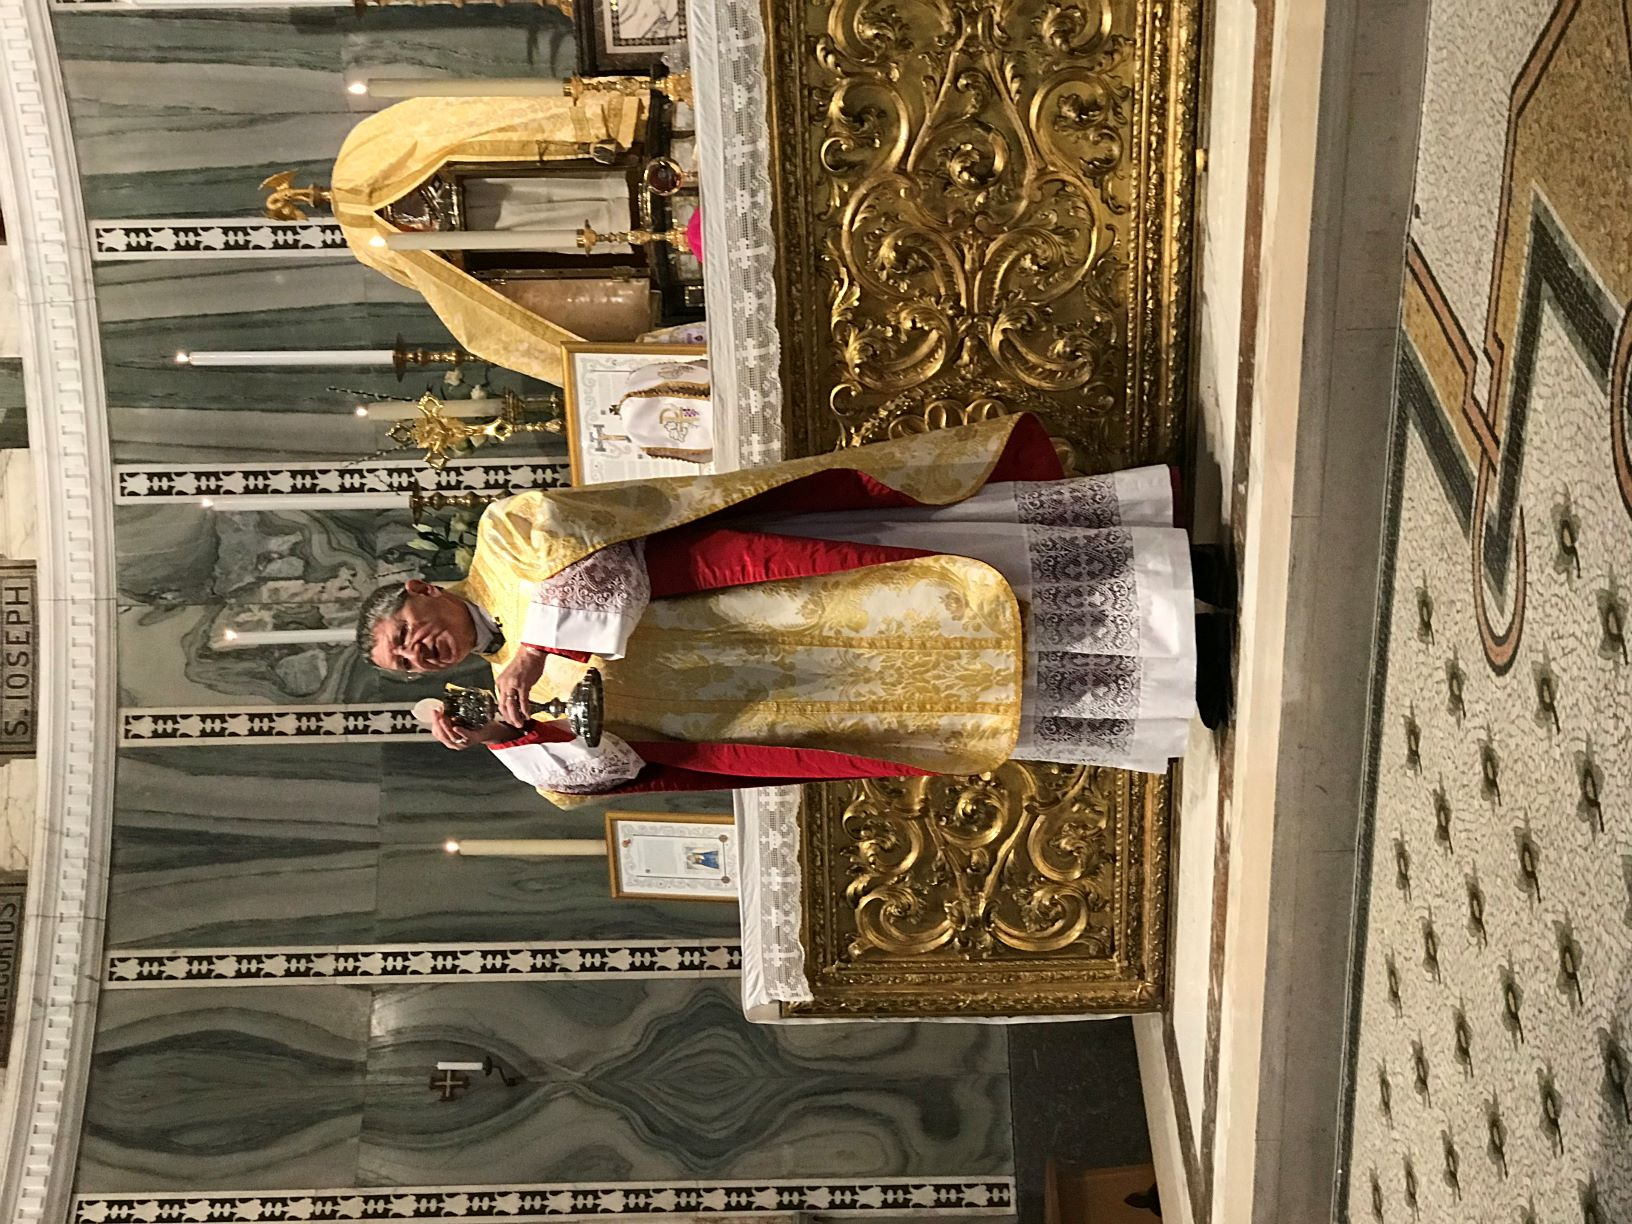 Sermon by Mgr/ Newton on the 10th Anniversary of the Ordinariates